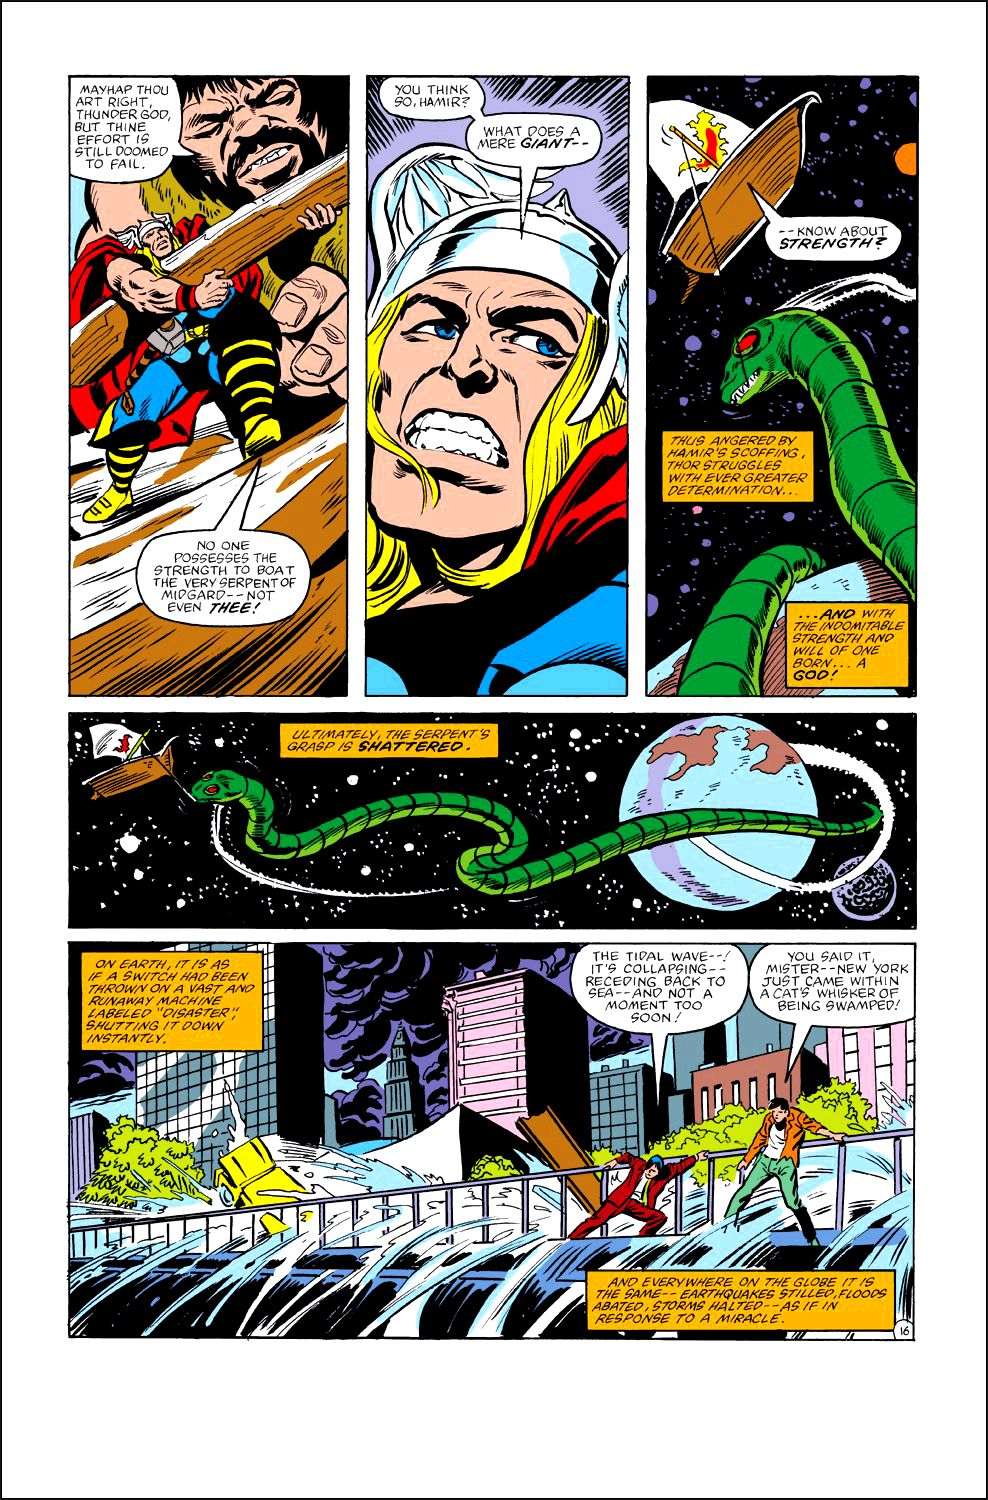 Asgard (marvel comics) invades your avatar's world things as